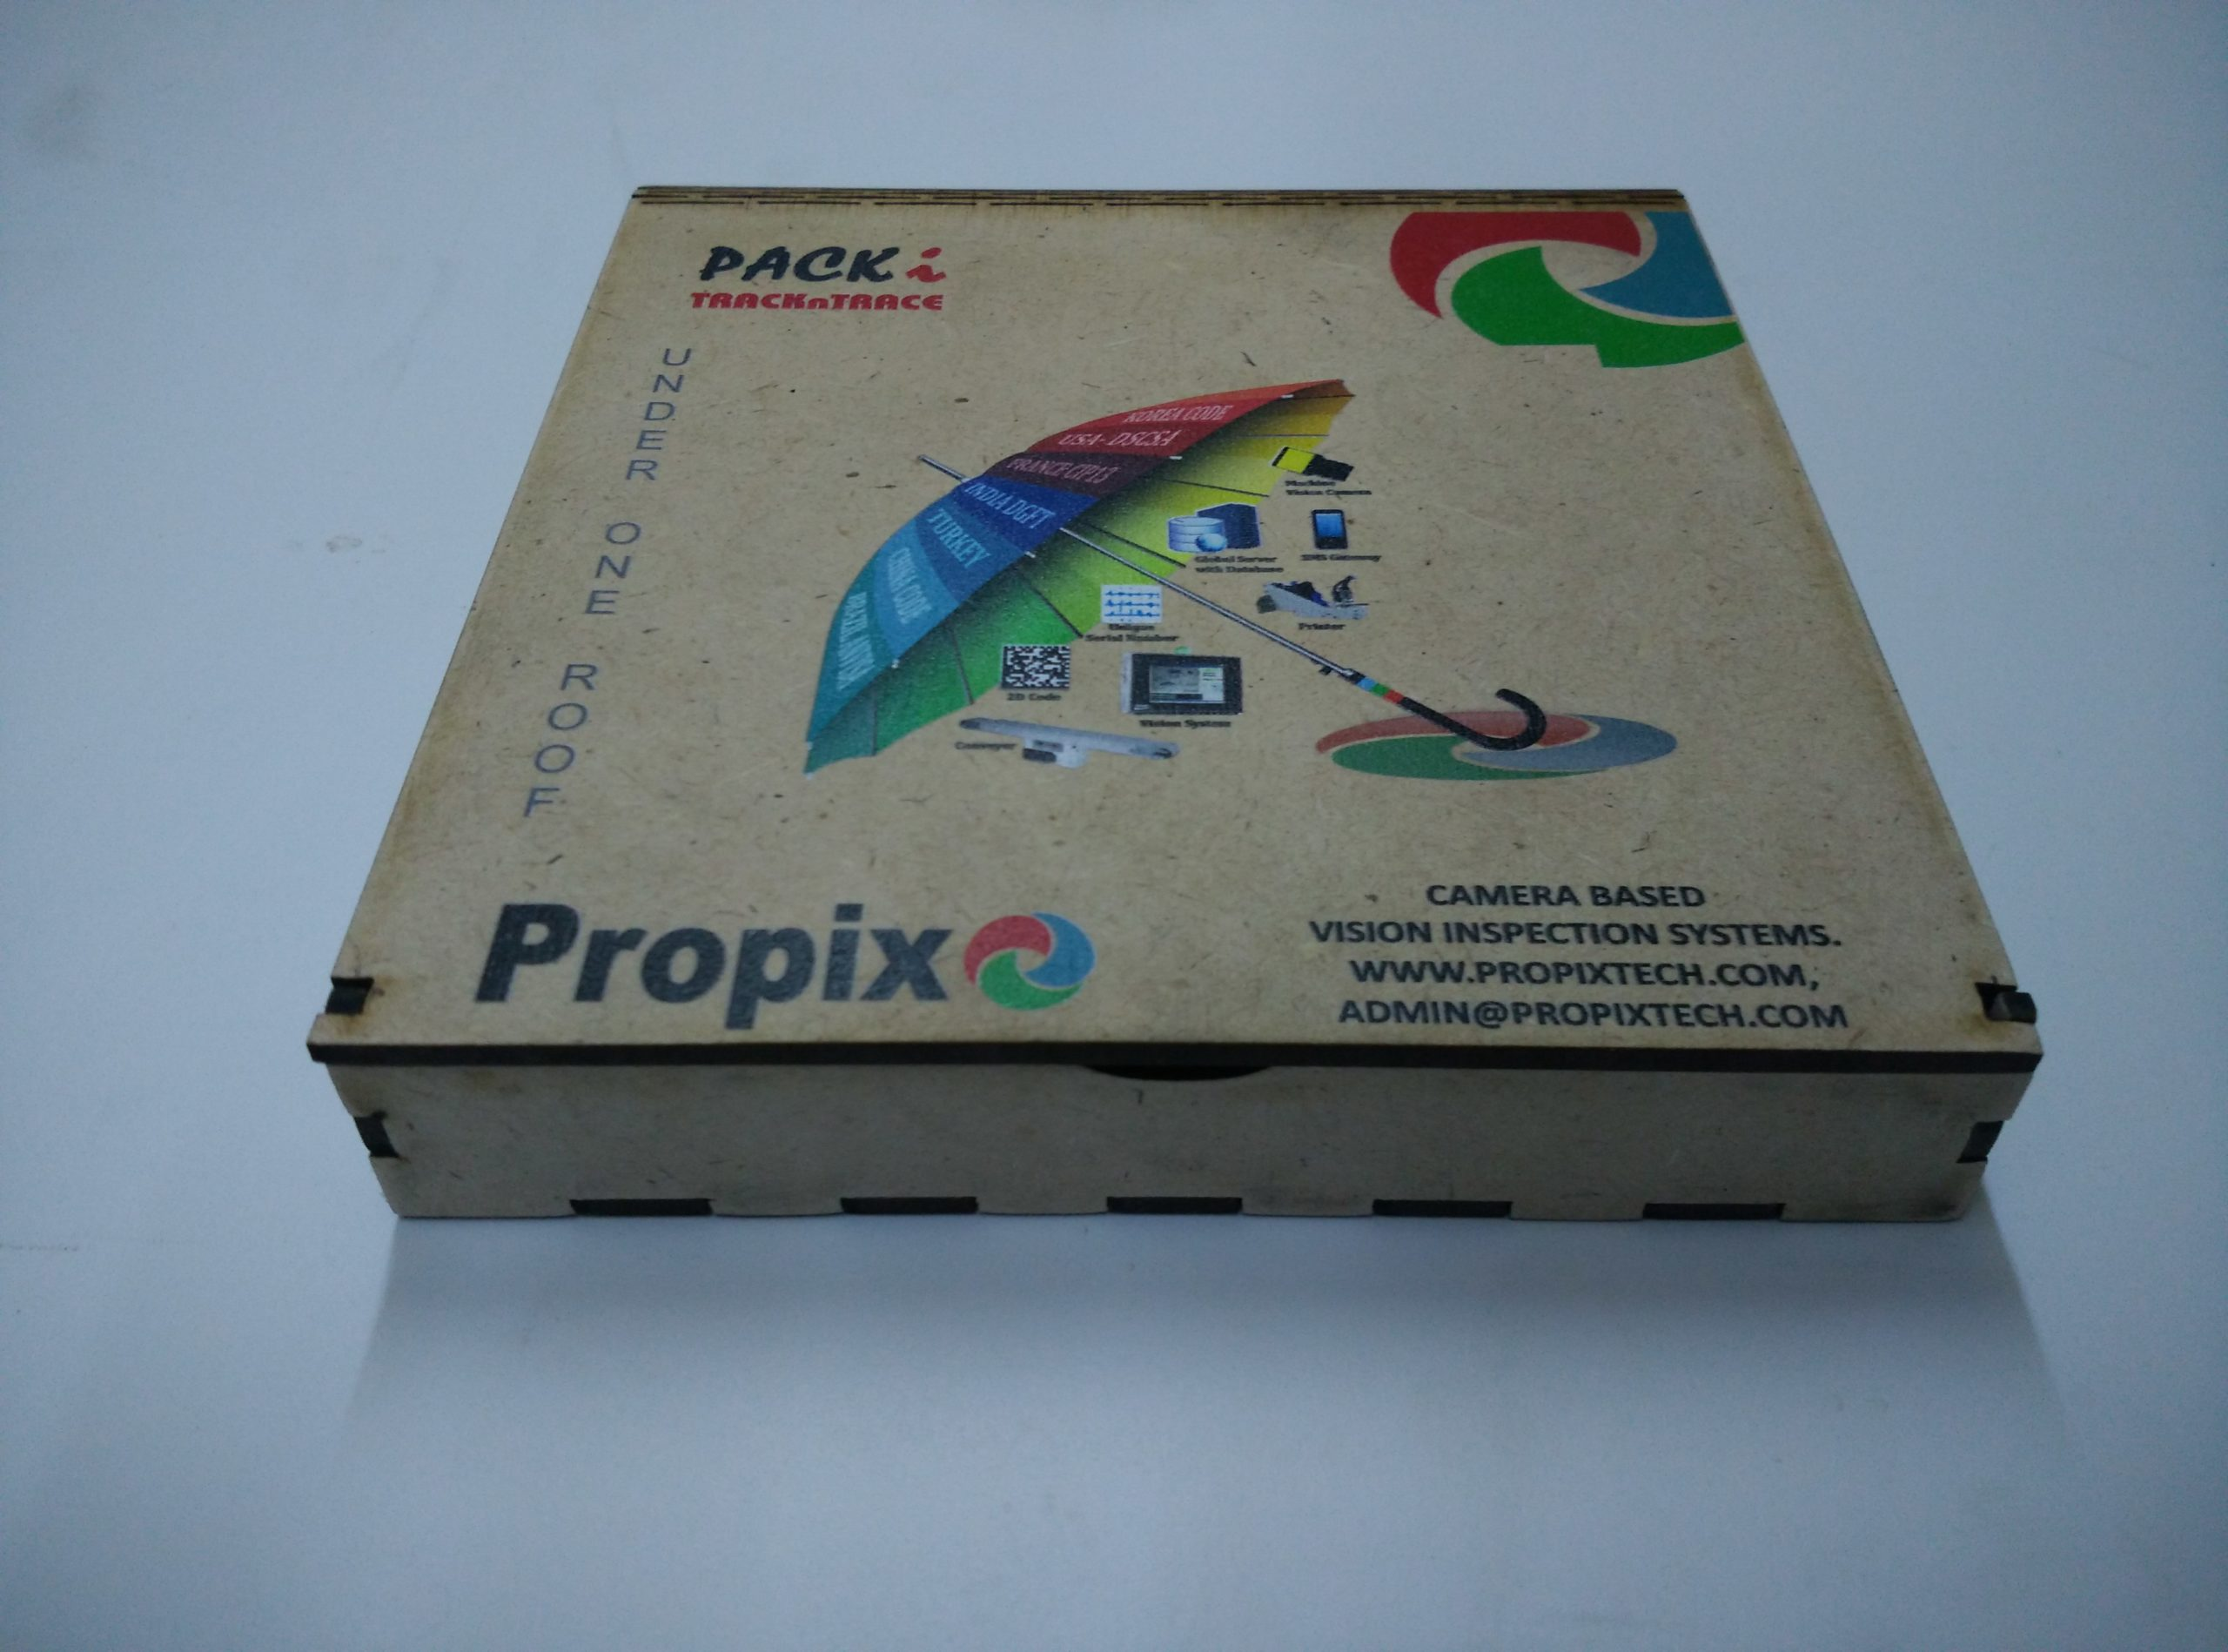 Cutting and Printing on Wooden box